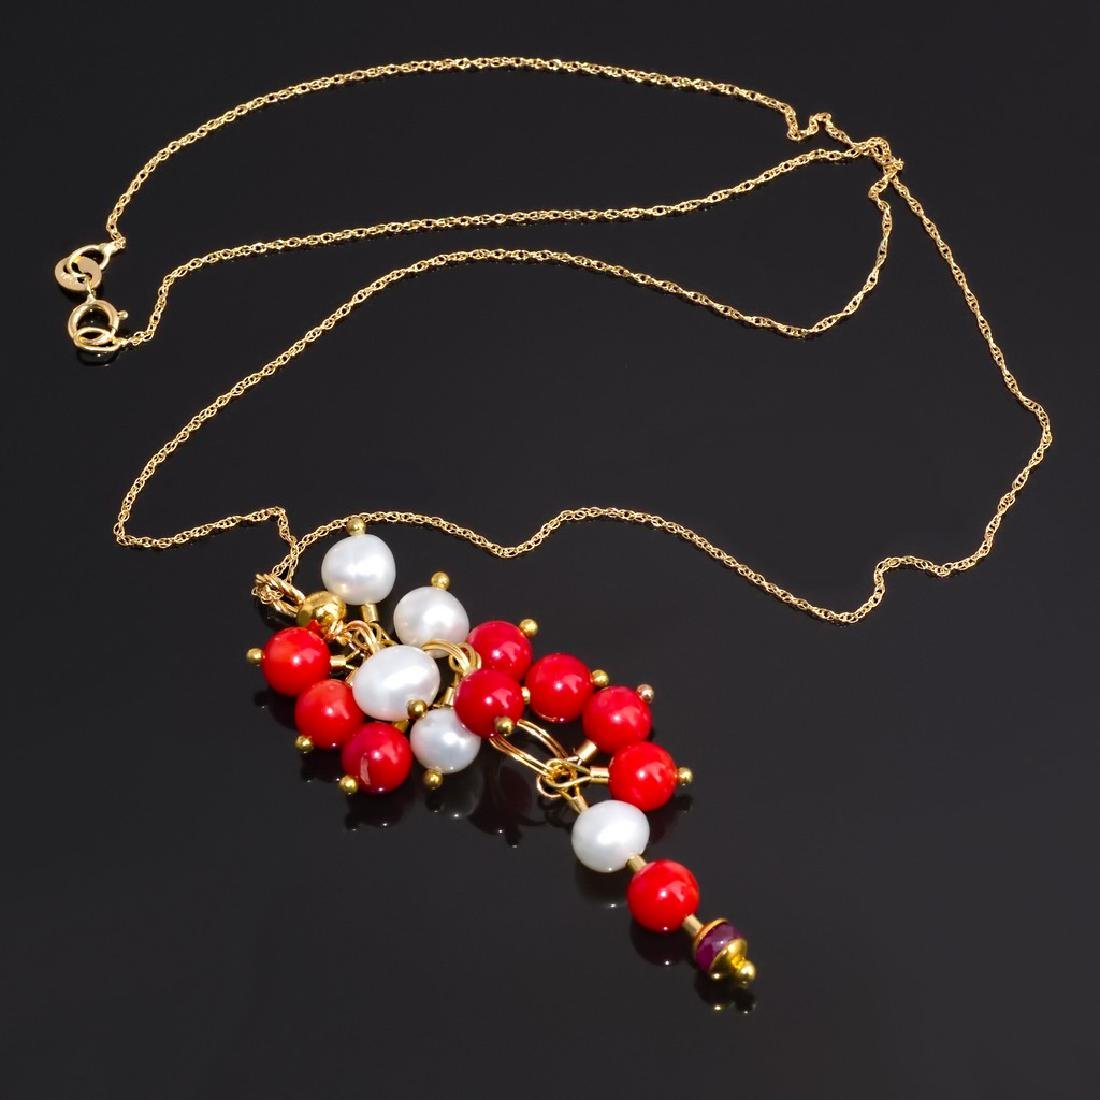 18k Colier with Cluster Coral, Pearl and Ruby Pendant